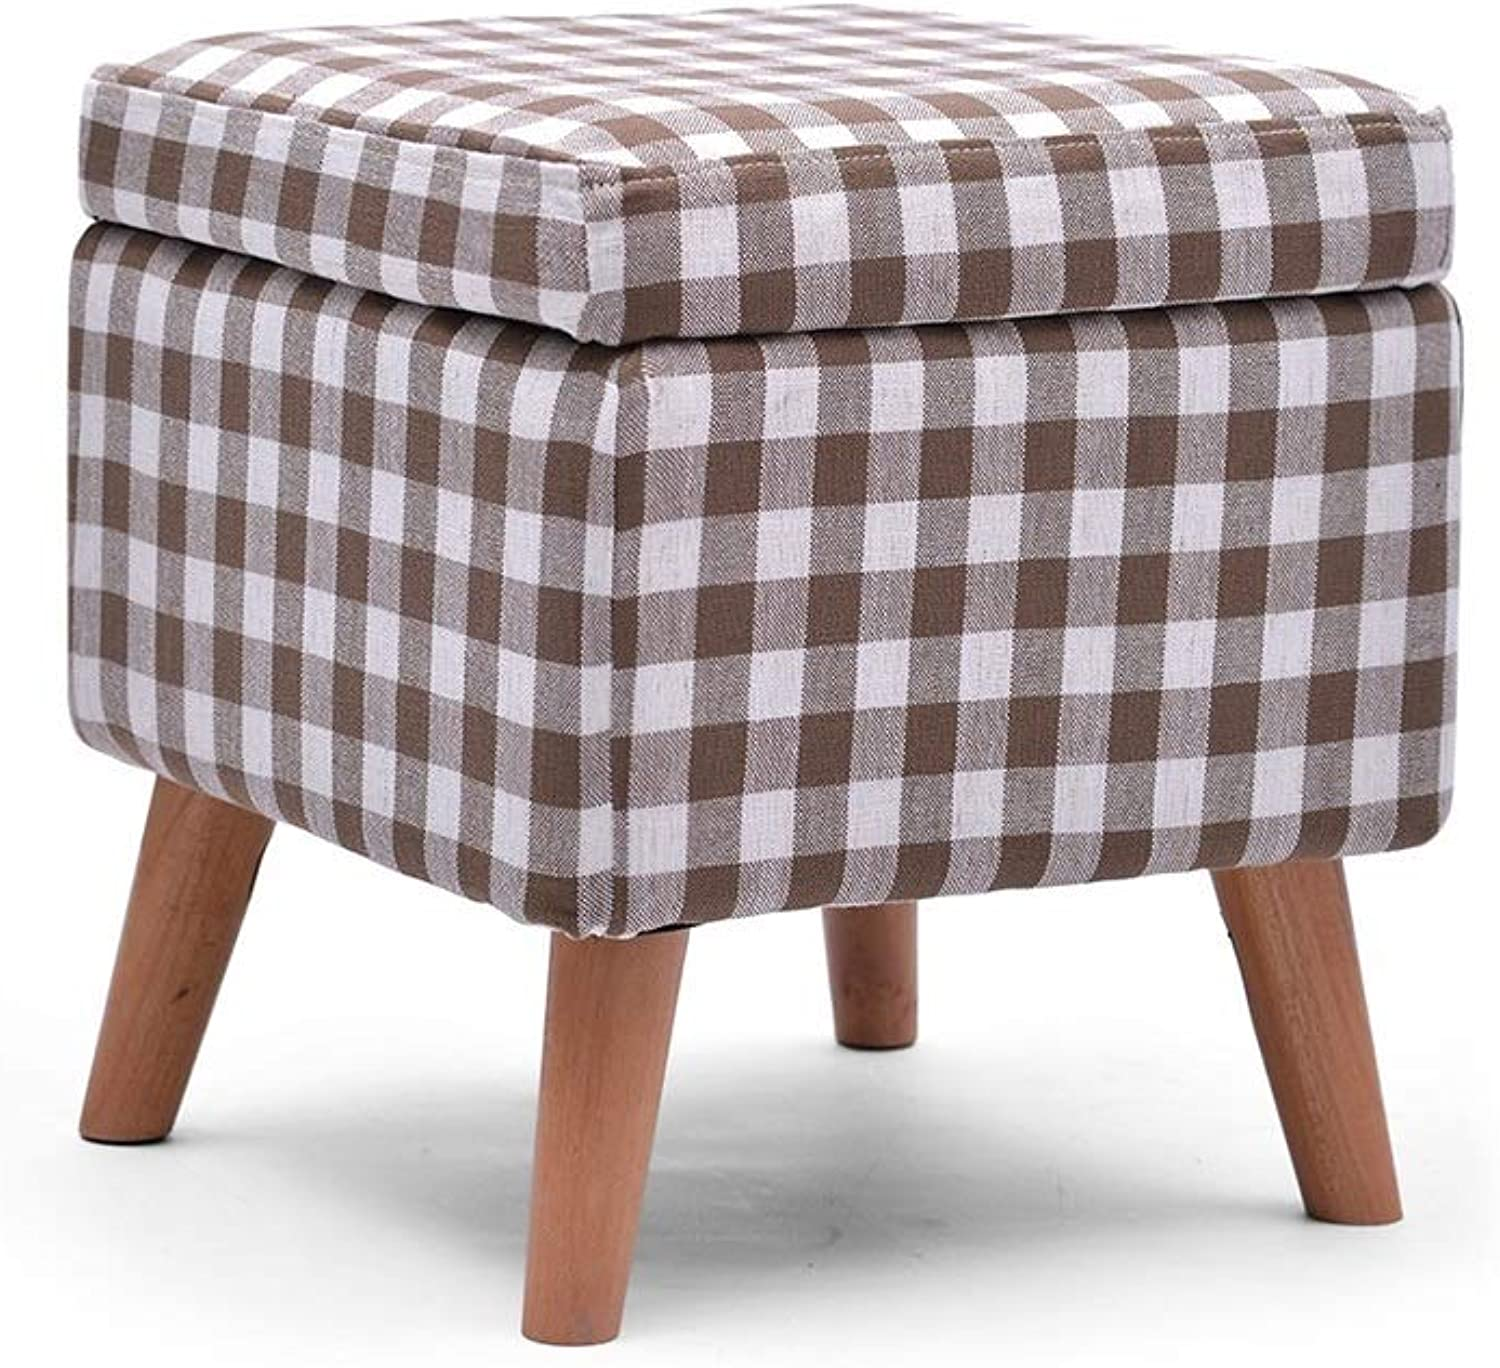 ZH STOOLS Sofa Stool, Solid Wood Square Small Bench Handmade Cotton Linen Multifunction Ergonomics Change shoes Stool for Living Room Entrance (color   Lattice, Size   Storage Stool)